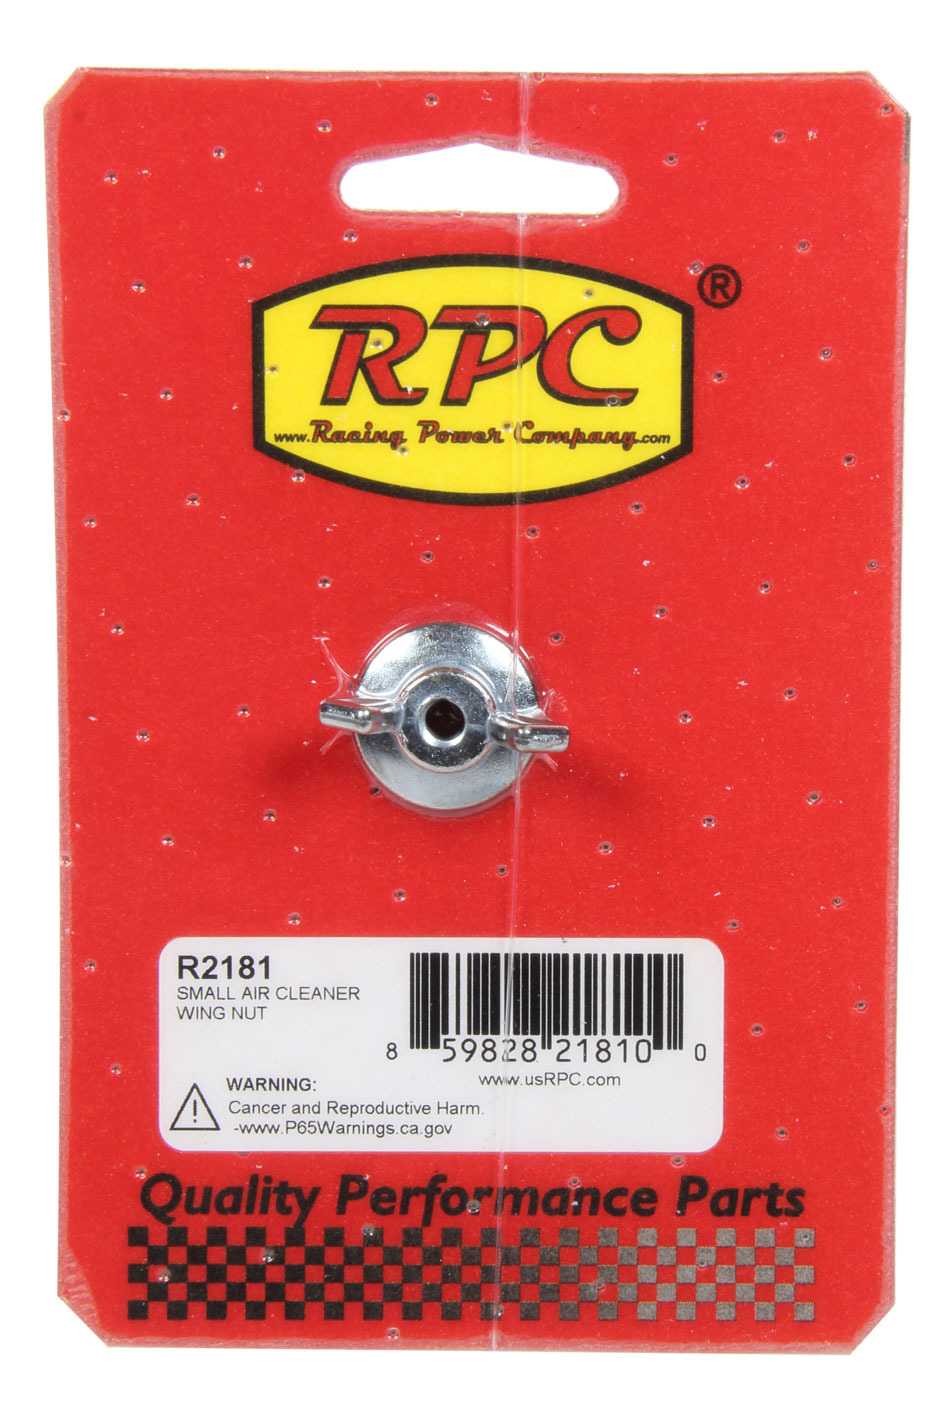 Racing Power Company R2181 Air Cleaner Nut, Small, Wing, 1/4-20 in Thread, Steel, Chrome, Each